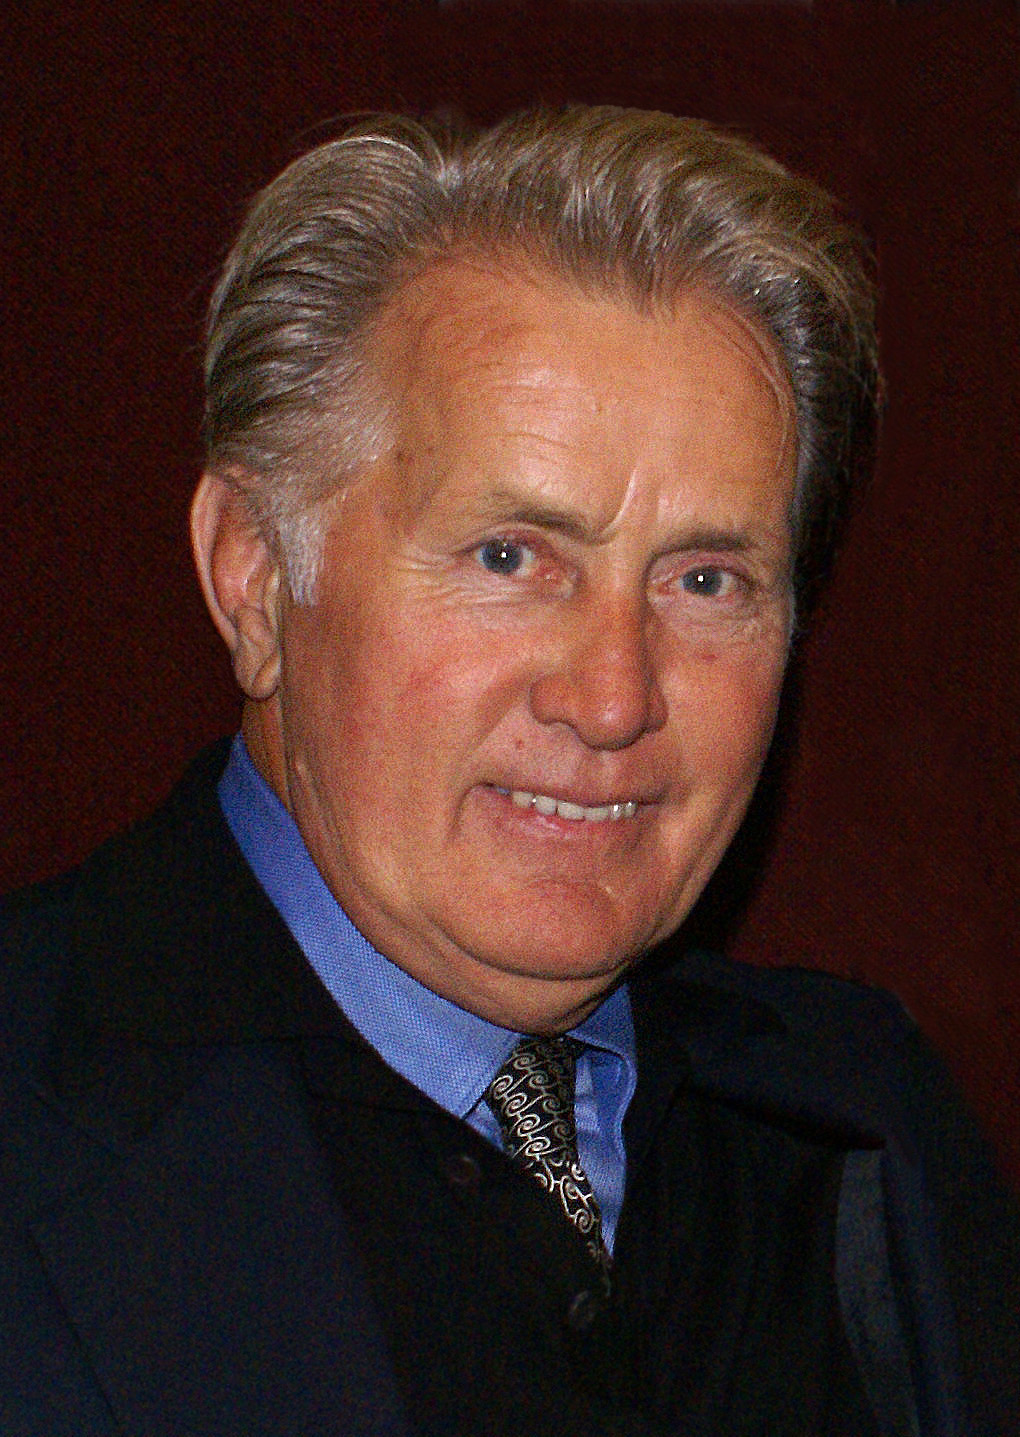 joe estevez net worth